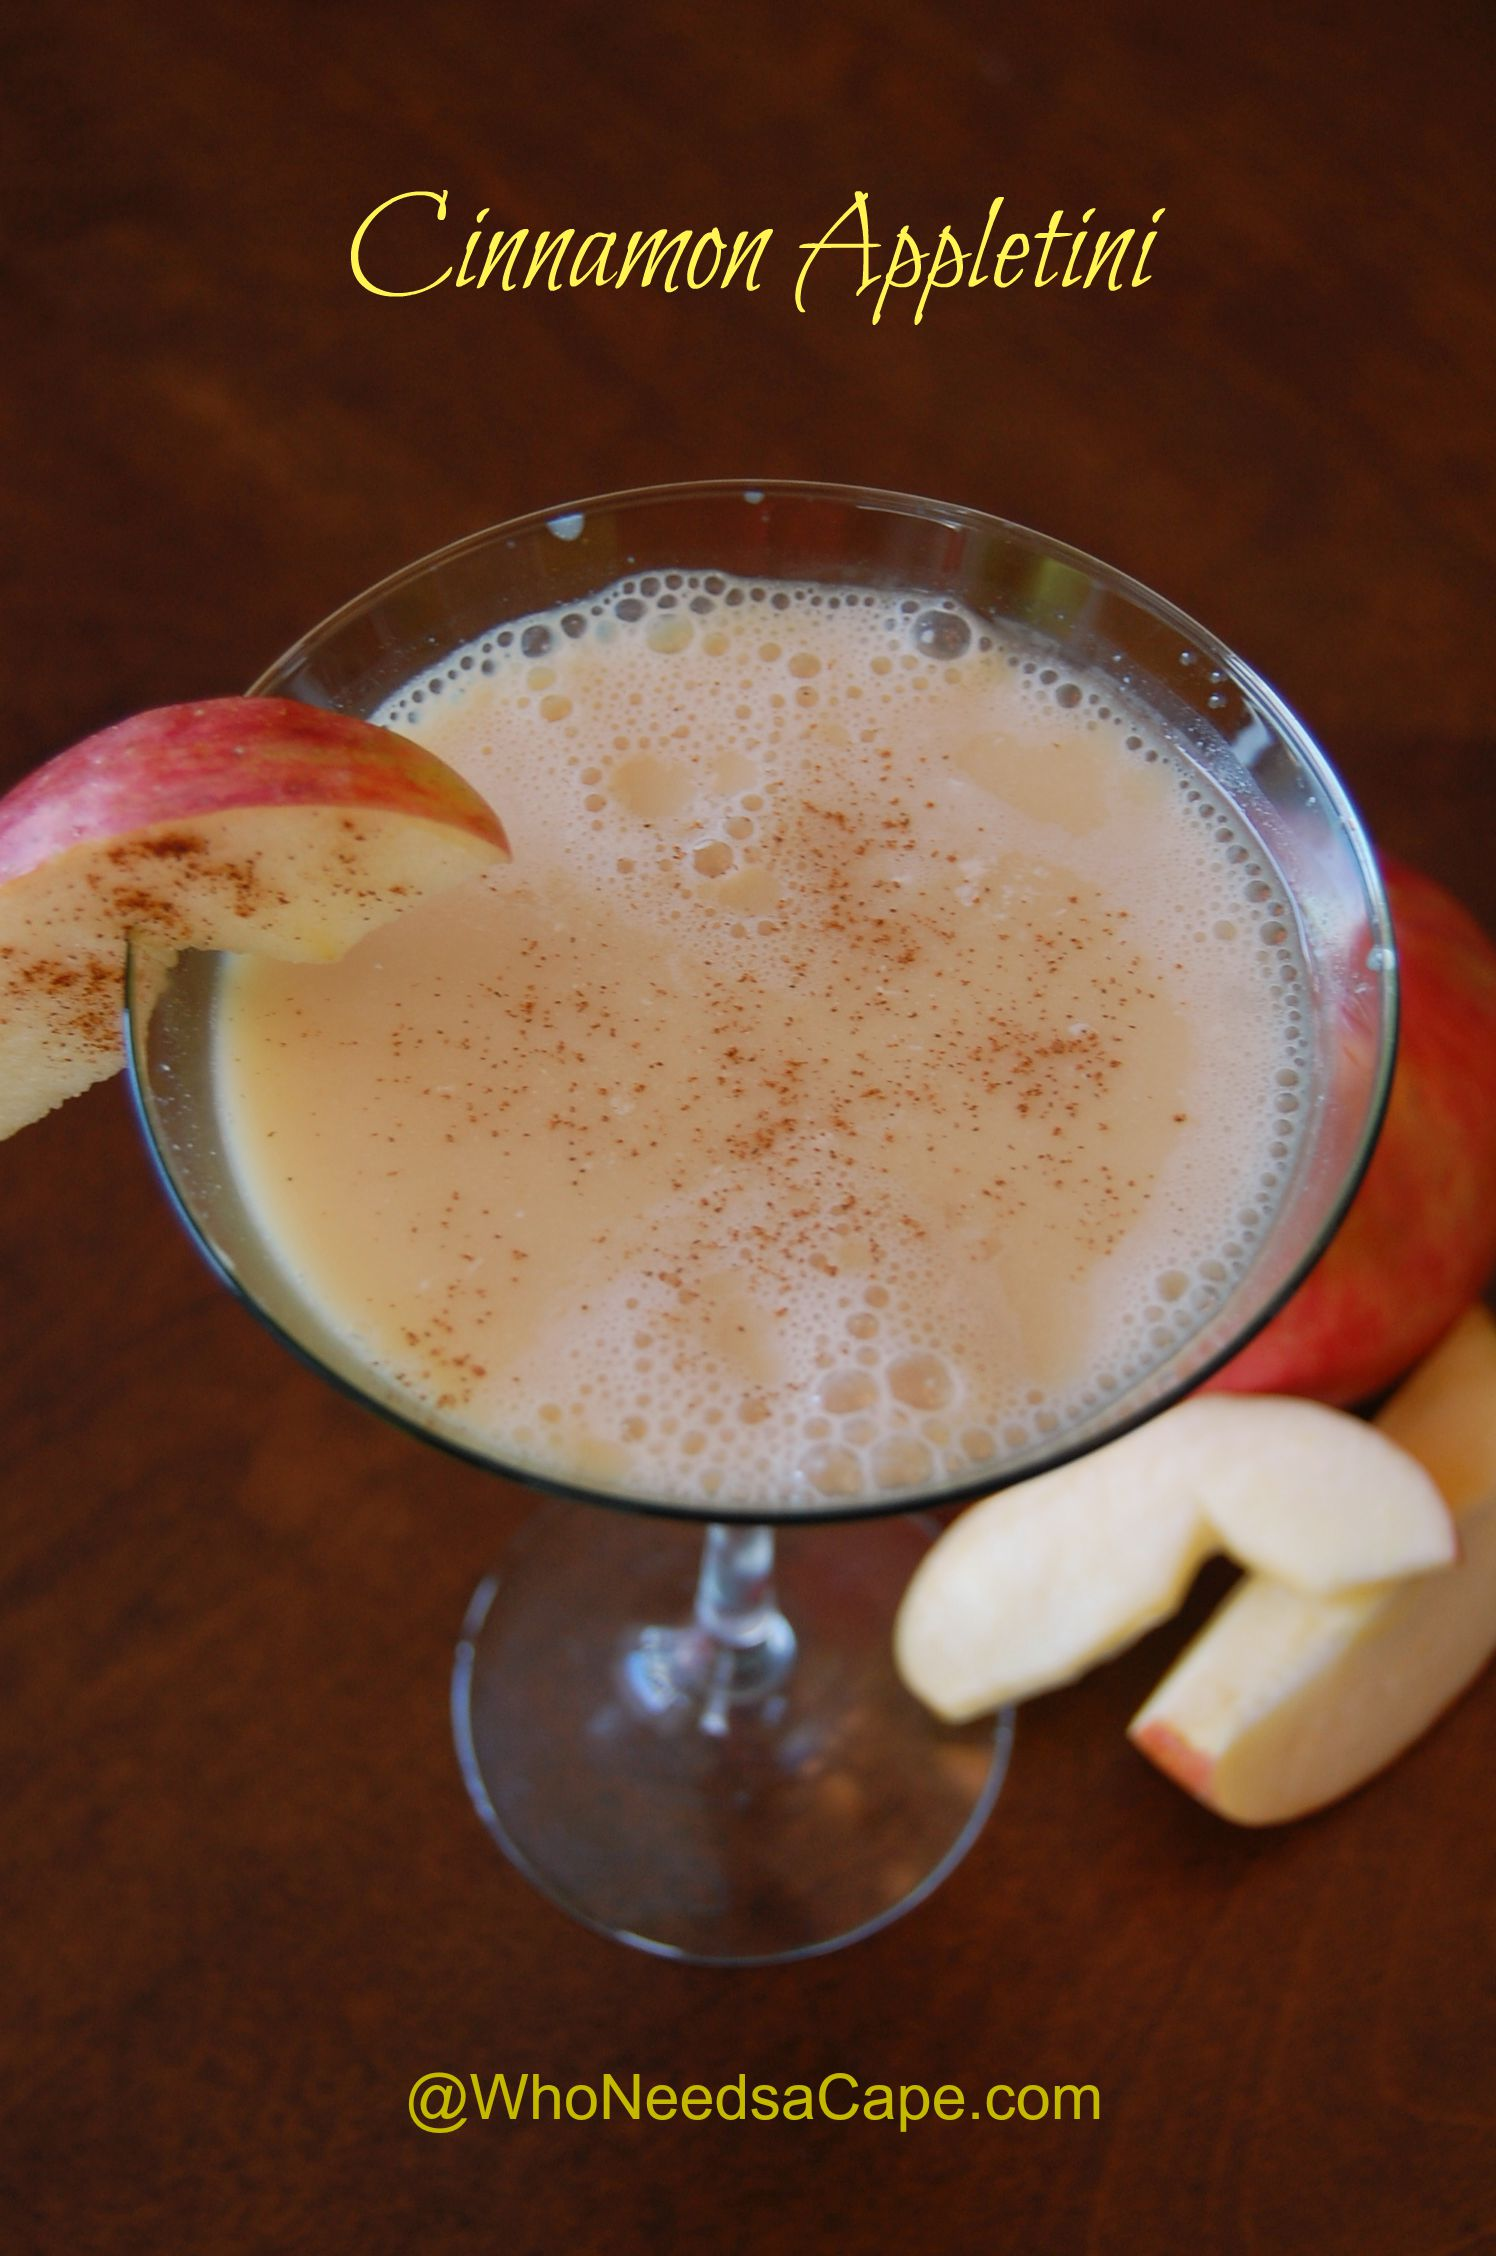 Cinnamon Appletini with 40 other Cocktail and Appetizer Recipes to get your party started!